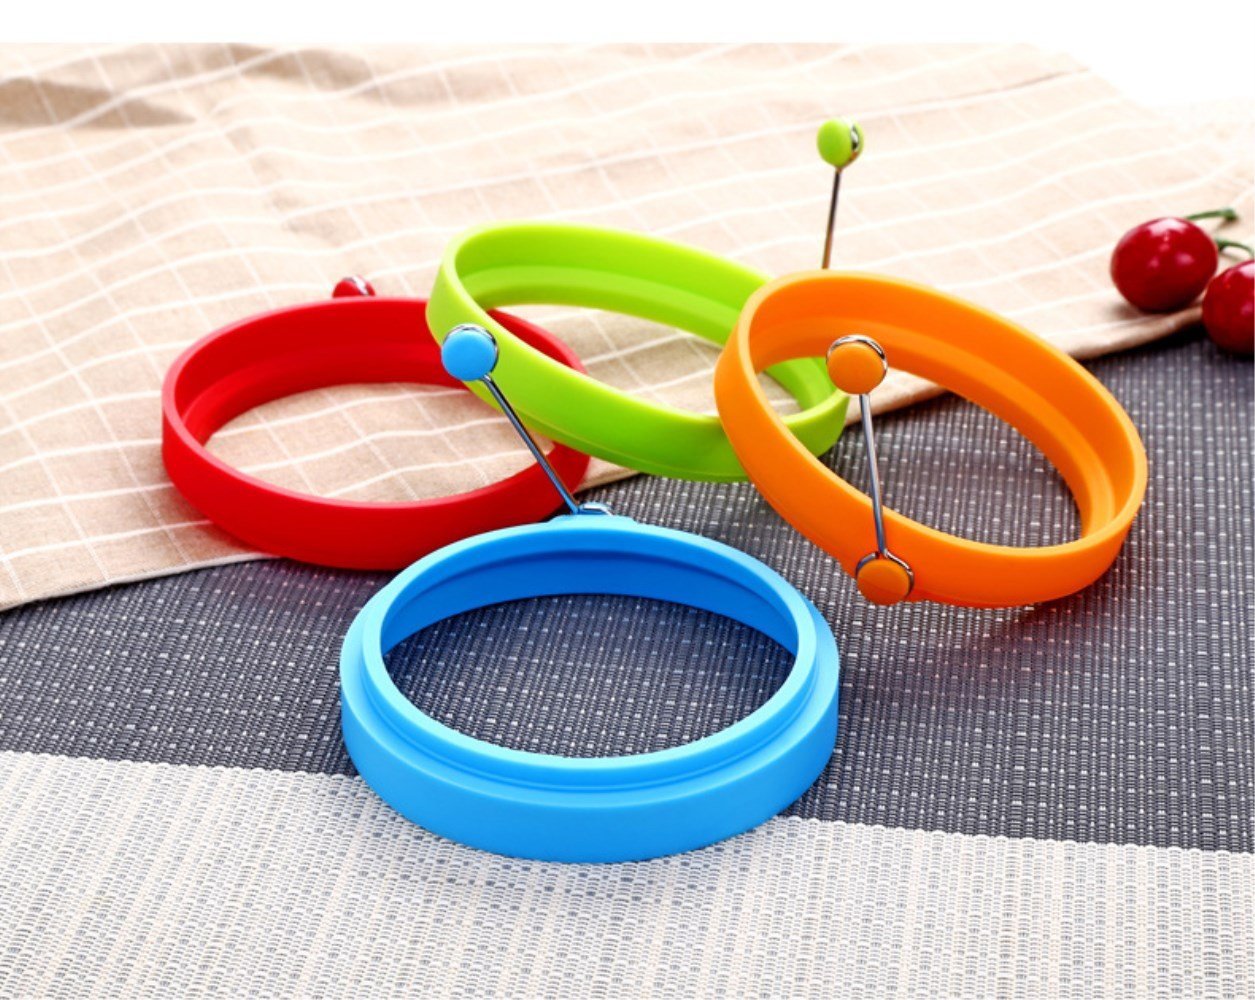 Silicone Egg Rings Non Stick Egg Cooking Rings Perfect Fried Egg Mold or Pancake Rings 4 Circles I DREAM Egg Ring